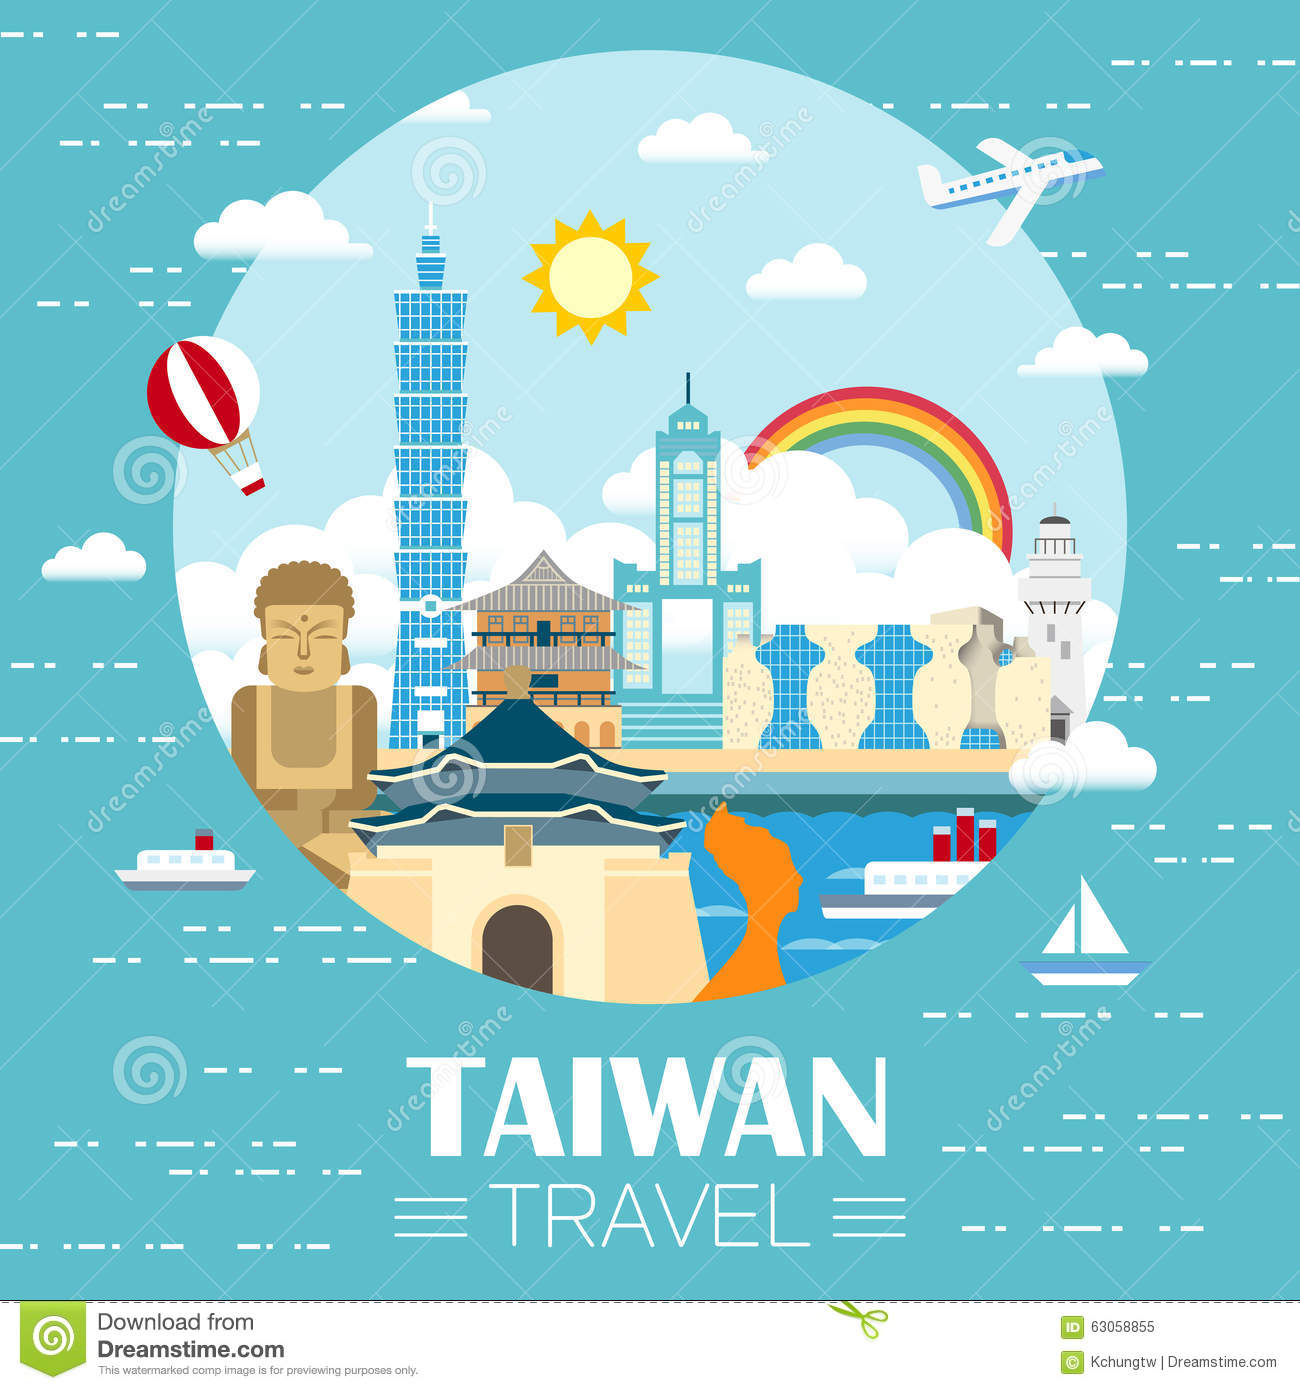 Taiwan Travel Guide Book